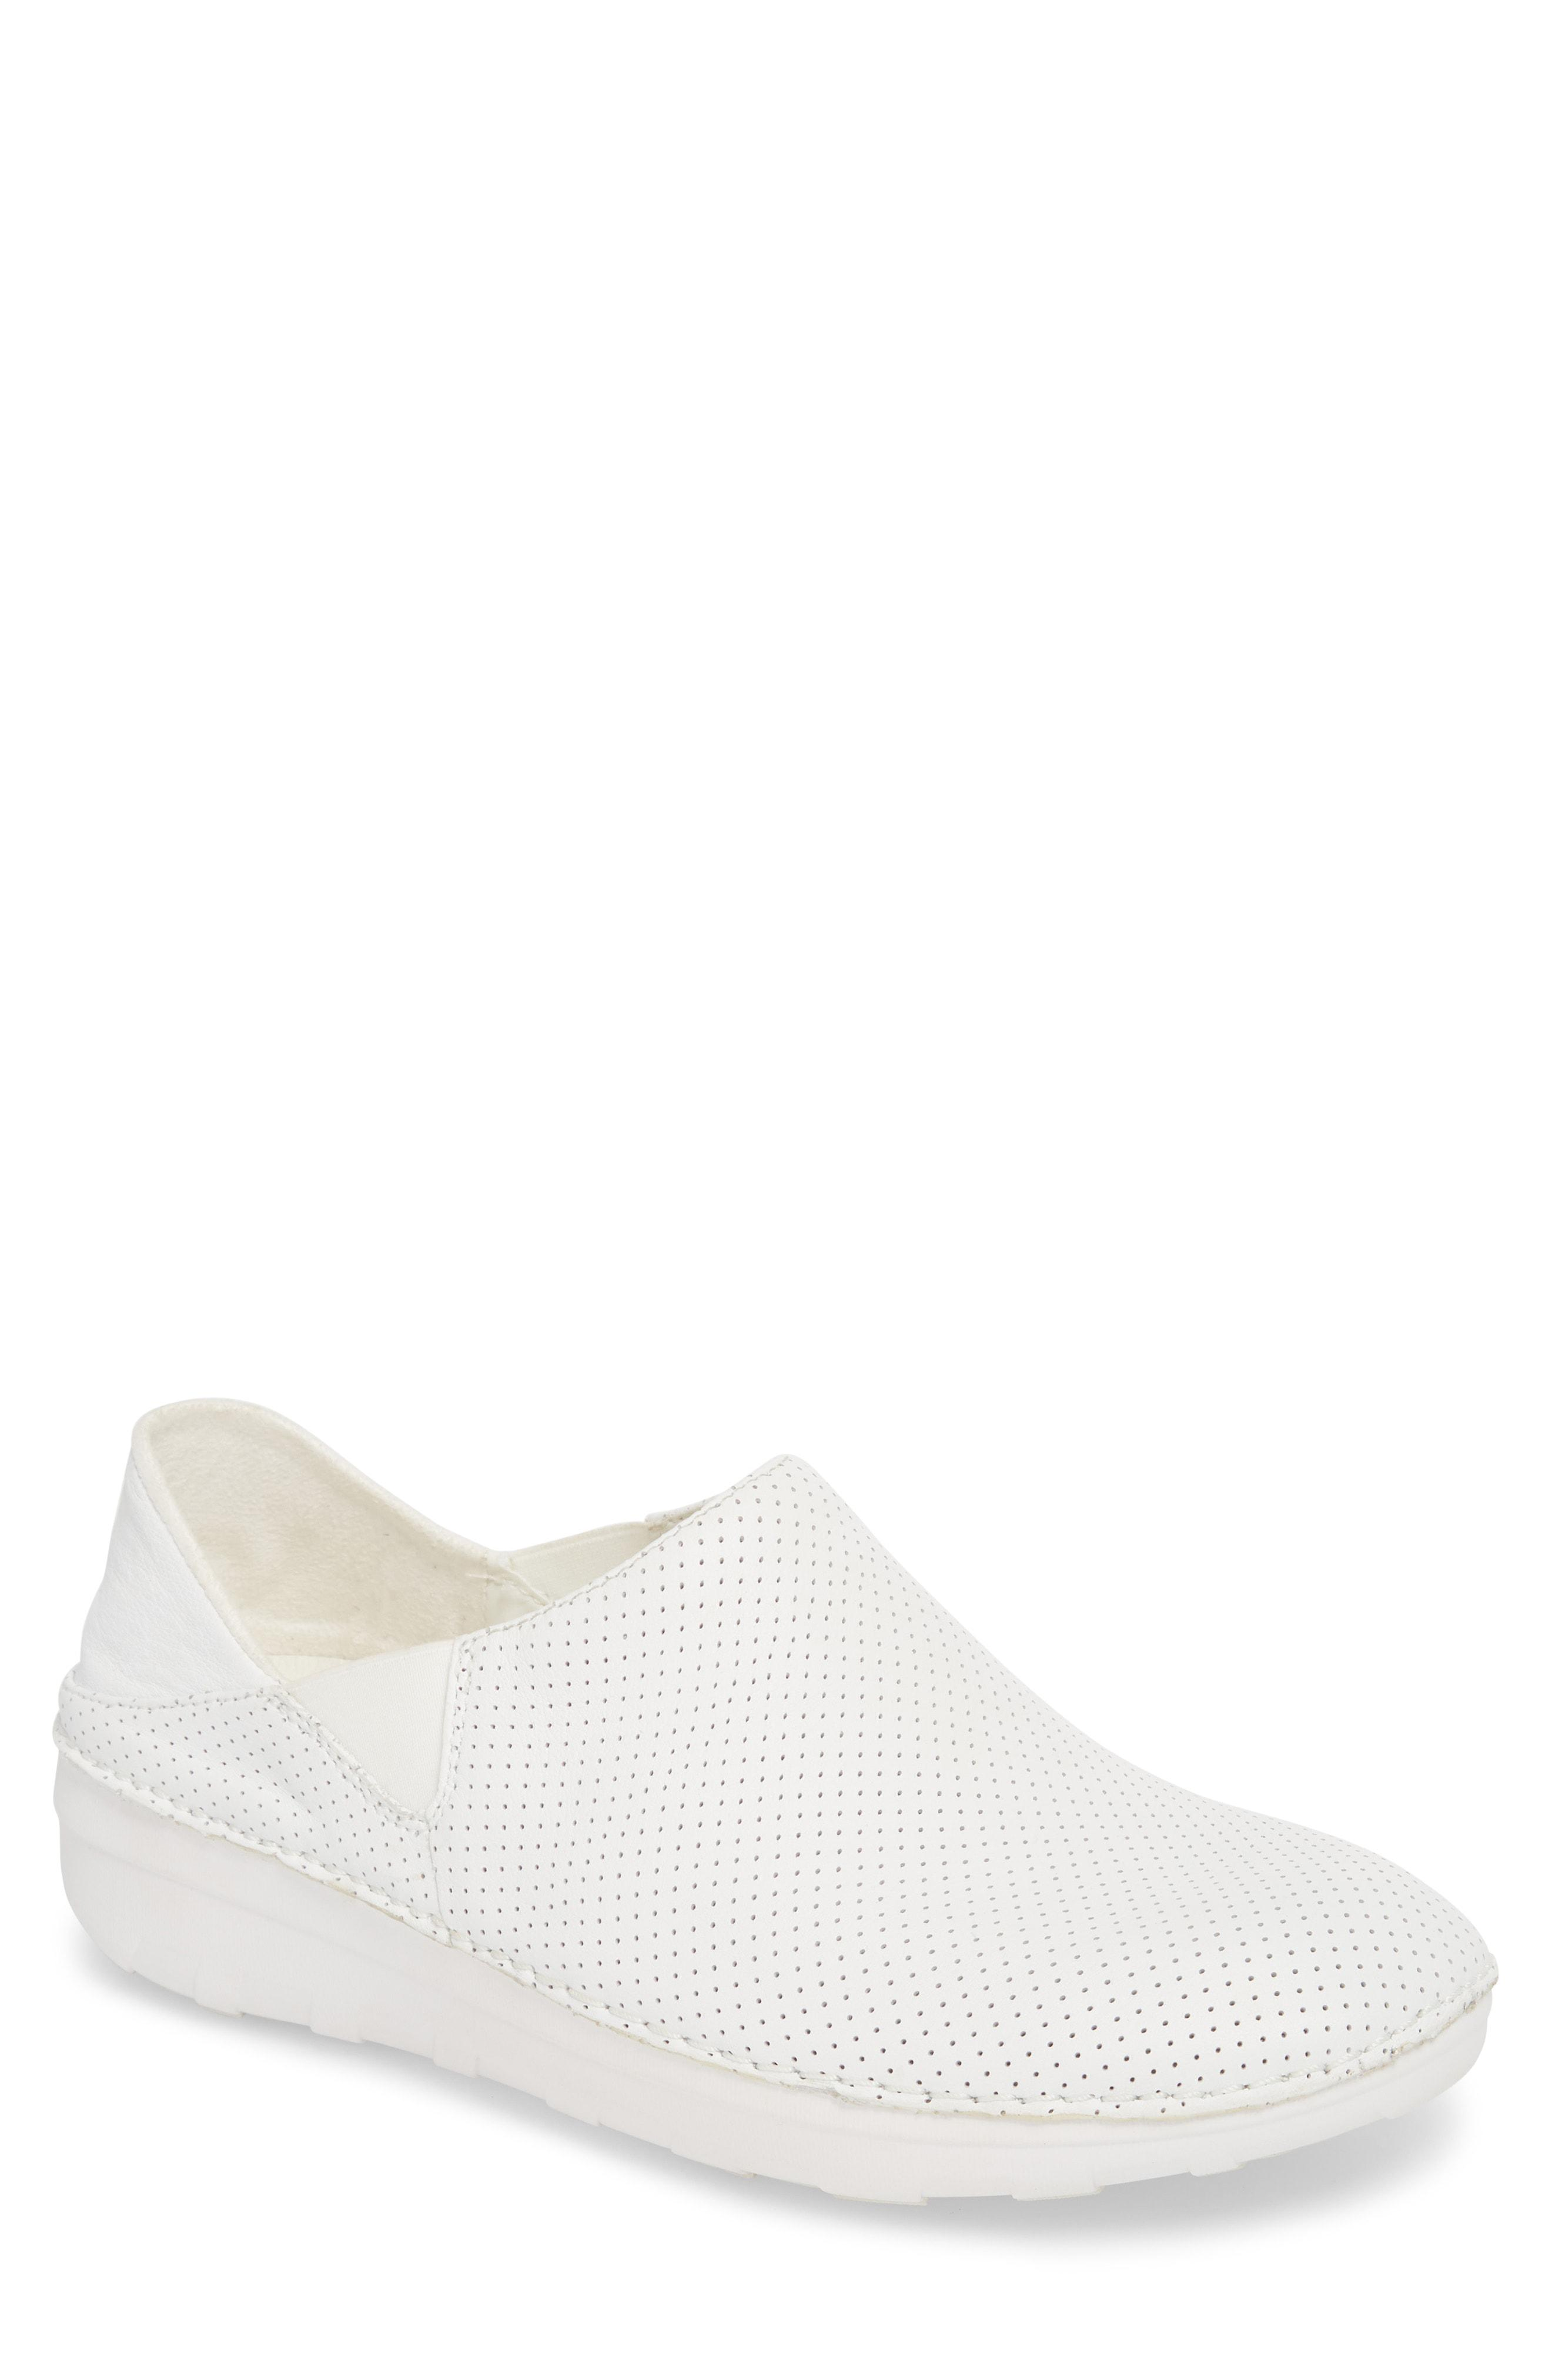 056f12768b6 Lyst - Fitflop Superloafer Perforated Slip-on Sneaker in White for Men